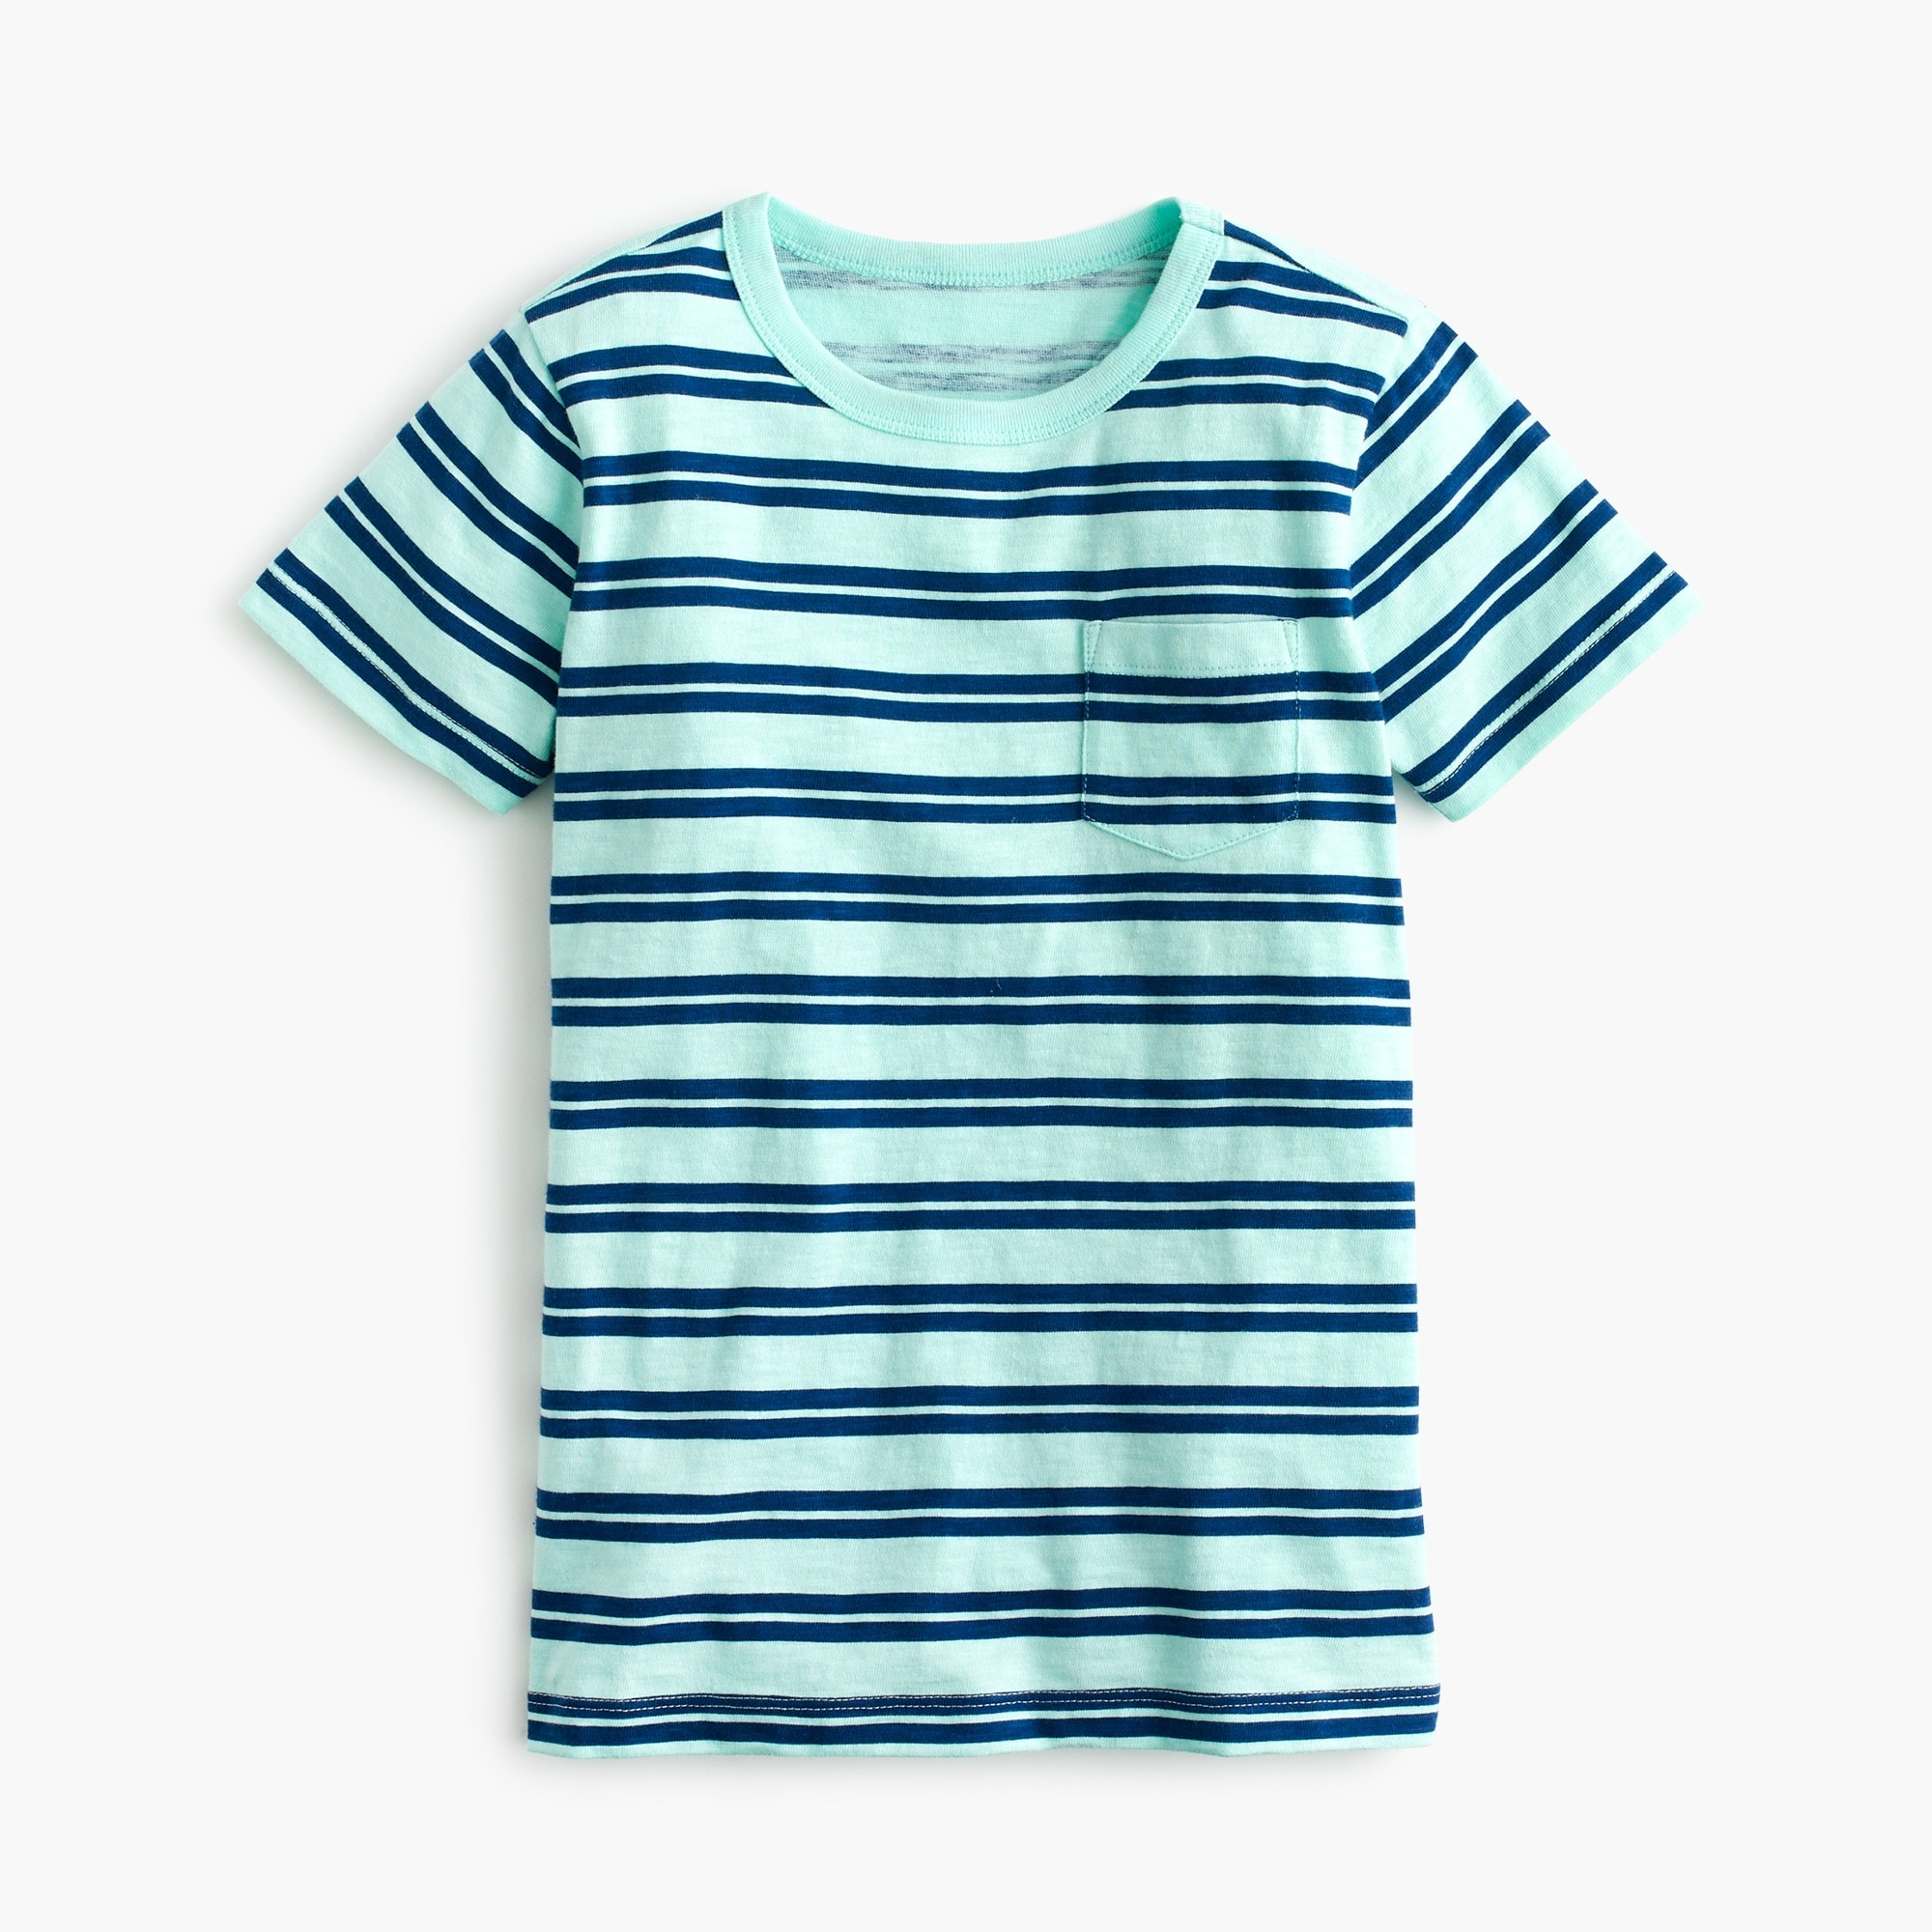 Boys' striped pocket T-shirt boy new arrivals c